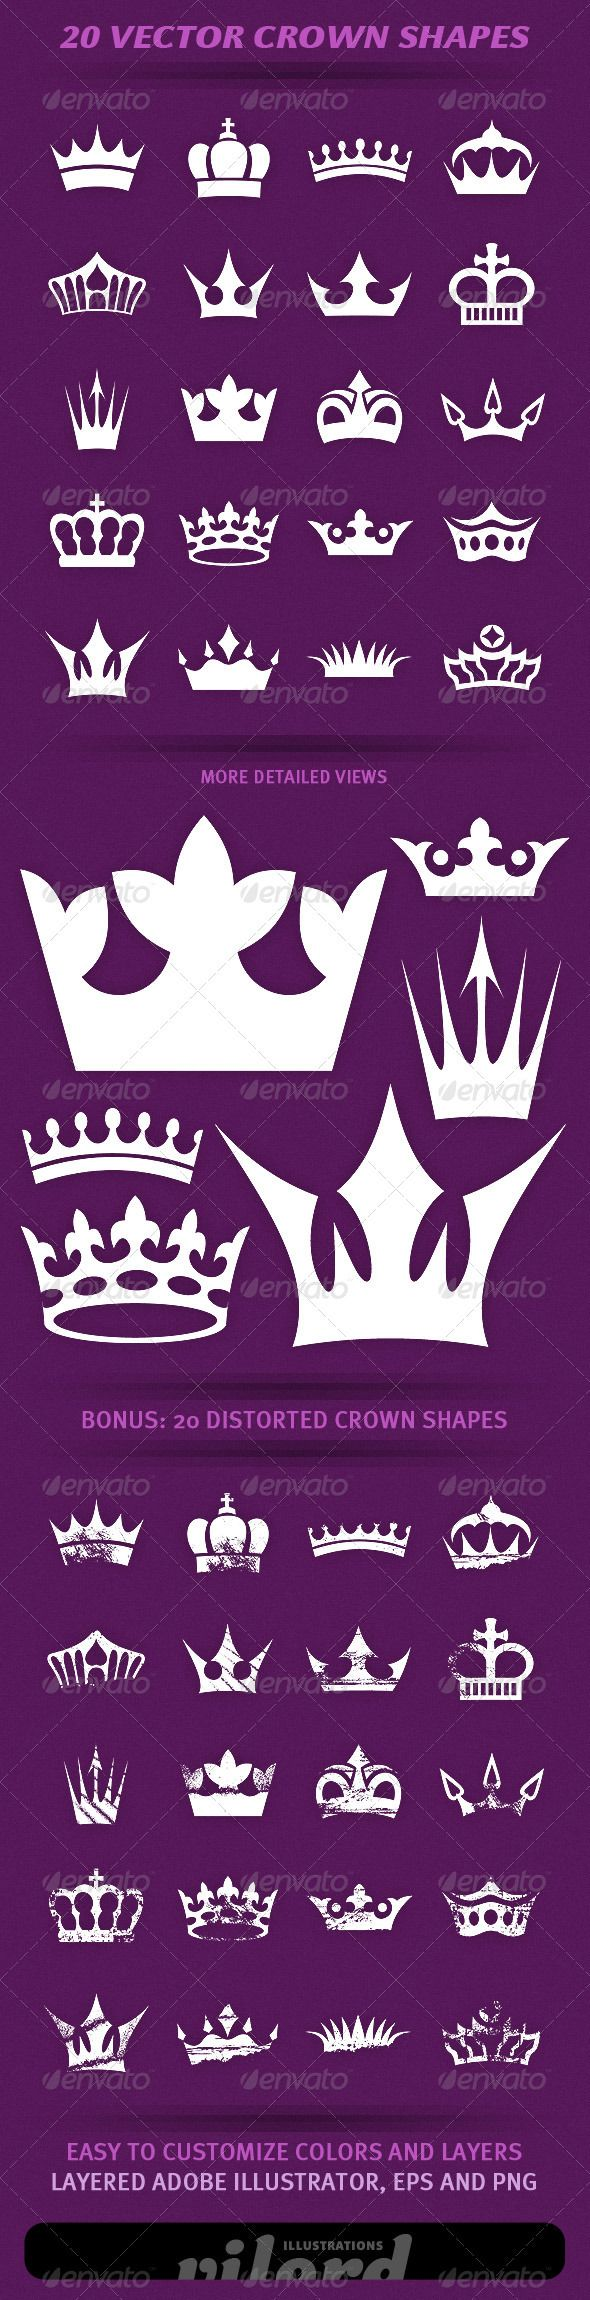 "20 Crown Shapes #GraphicRiver Set of 20 vector vintage crown shapes for your graphic designs. Great for print or web design! Enjoy Adobe Illustrator is main file and ""fully editable"". Also transparent PNG and EPS files in the package. BONUS : 20 distorted heraldry crown shapes also included. Created: 3April12 GraphicsFilesIncluded: TransparentPNG #VectorEPS #AIIllustrator Layered: Yes MinimumAdobeCSVersion: CS Tags: crests #crowns #decoration #heraldry #ornaments #print #retro #shapes…"